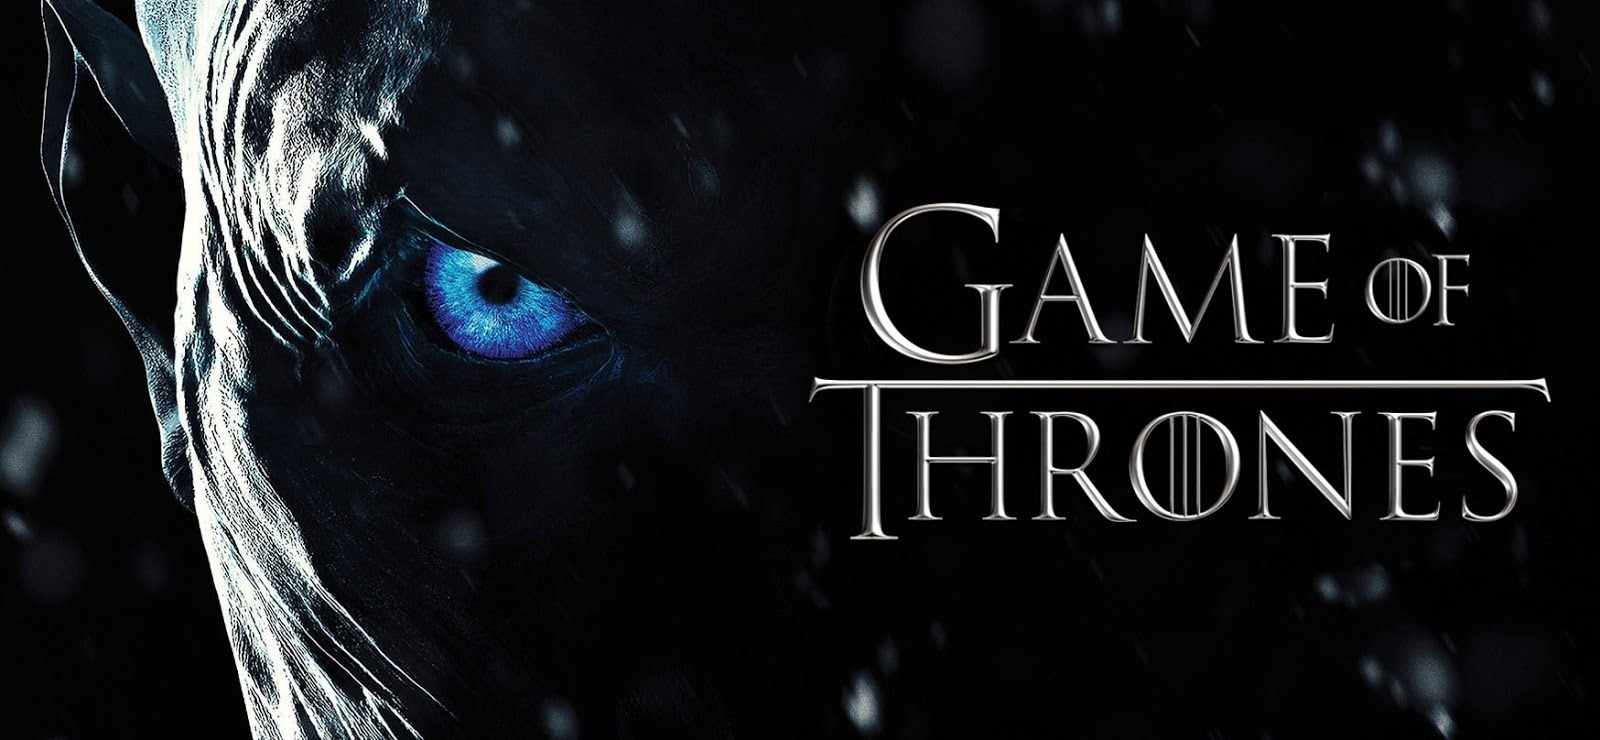 Game Of Thrones S01e02 The Kingsroad English Subtitles